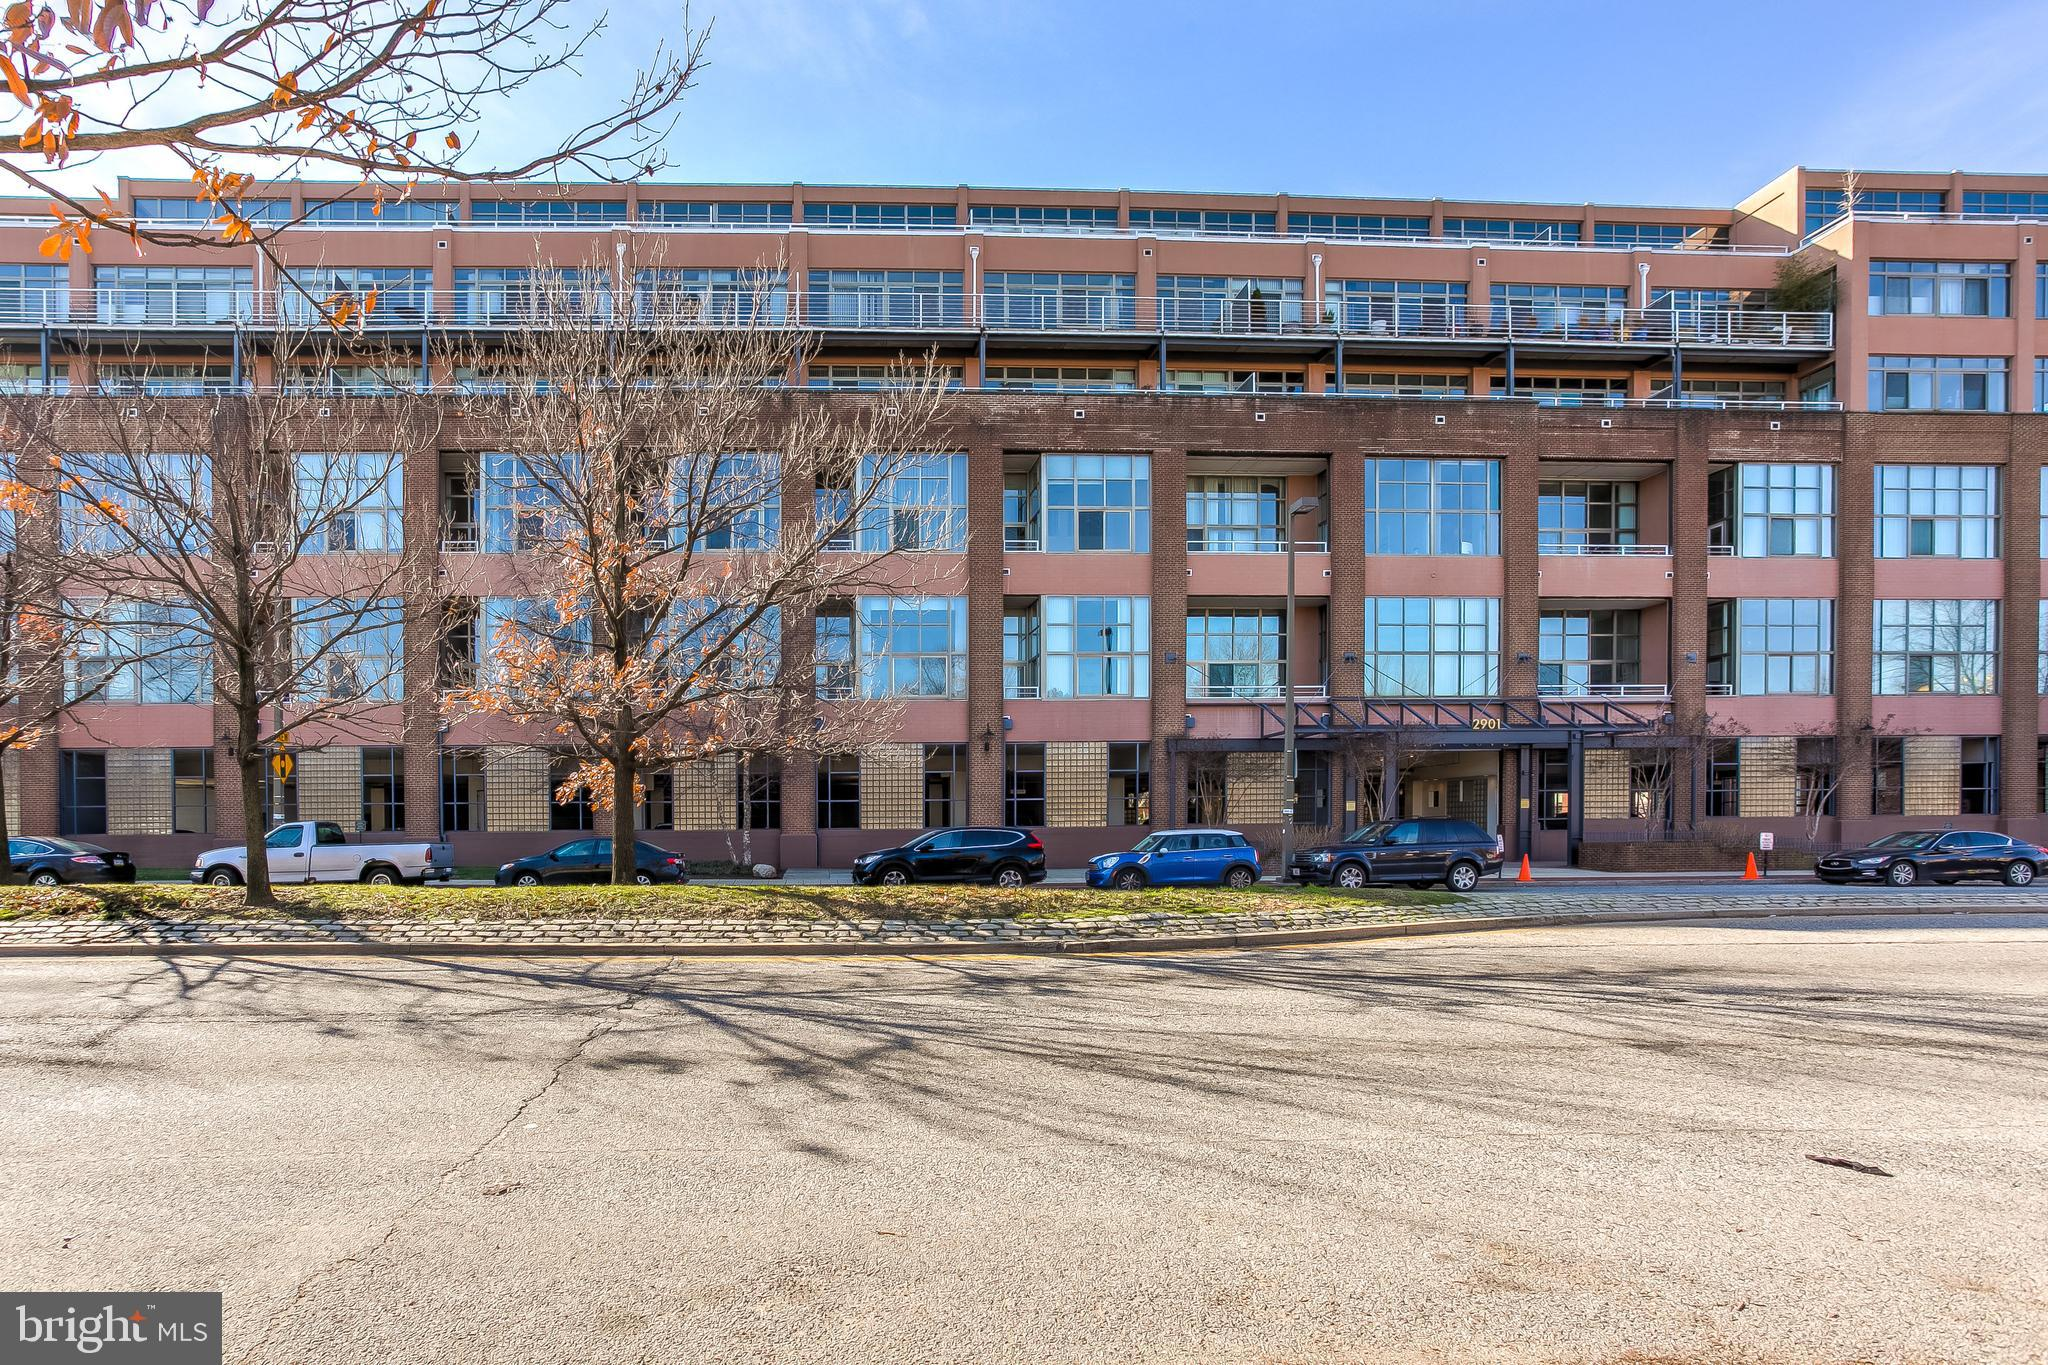 Stunning condo located in Canton Cove on the waterfront featuring panoramic cityscape views from floor to ceiling, wall to wall windows and covered balcony that stretches the length of the unit!  This home offers 3 bedrooms, each with balcony access, and 2.5 baths, including the Owner's suite with gas fireplace, custom walk-in closet, and deluxe full bath with marble tile, dual rain head shower, jetted tub and bidet. Beautifully updated kitchen features marble counters, island, black and stainless steel appliances and classic white cabinets.  Elegant formal dining room leads to a sundrenched living room boasting a cozy wood fireplace and a wall of windows with access to balcony.  Enjoy rooftop access for fireworks and parties, 2 assigned parking spots in private lot.   Stroll the Canton waterfront and visit the shops and restaurants in and around the square  as well as nearby Fells Point and Harbor East. This home is impeccable & move-in ready today!